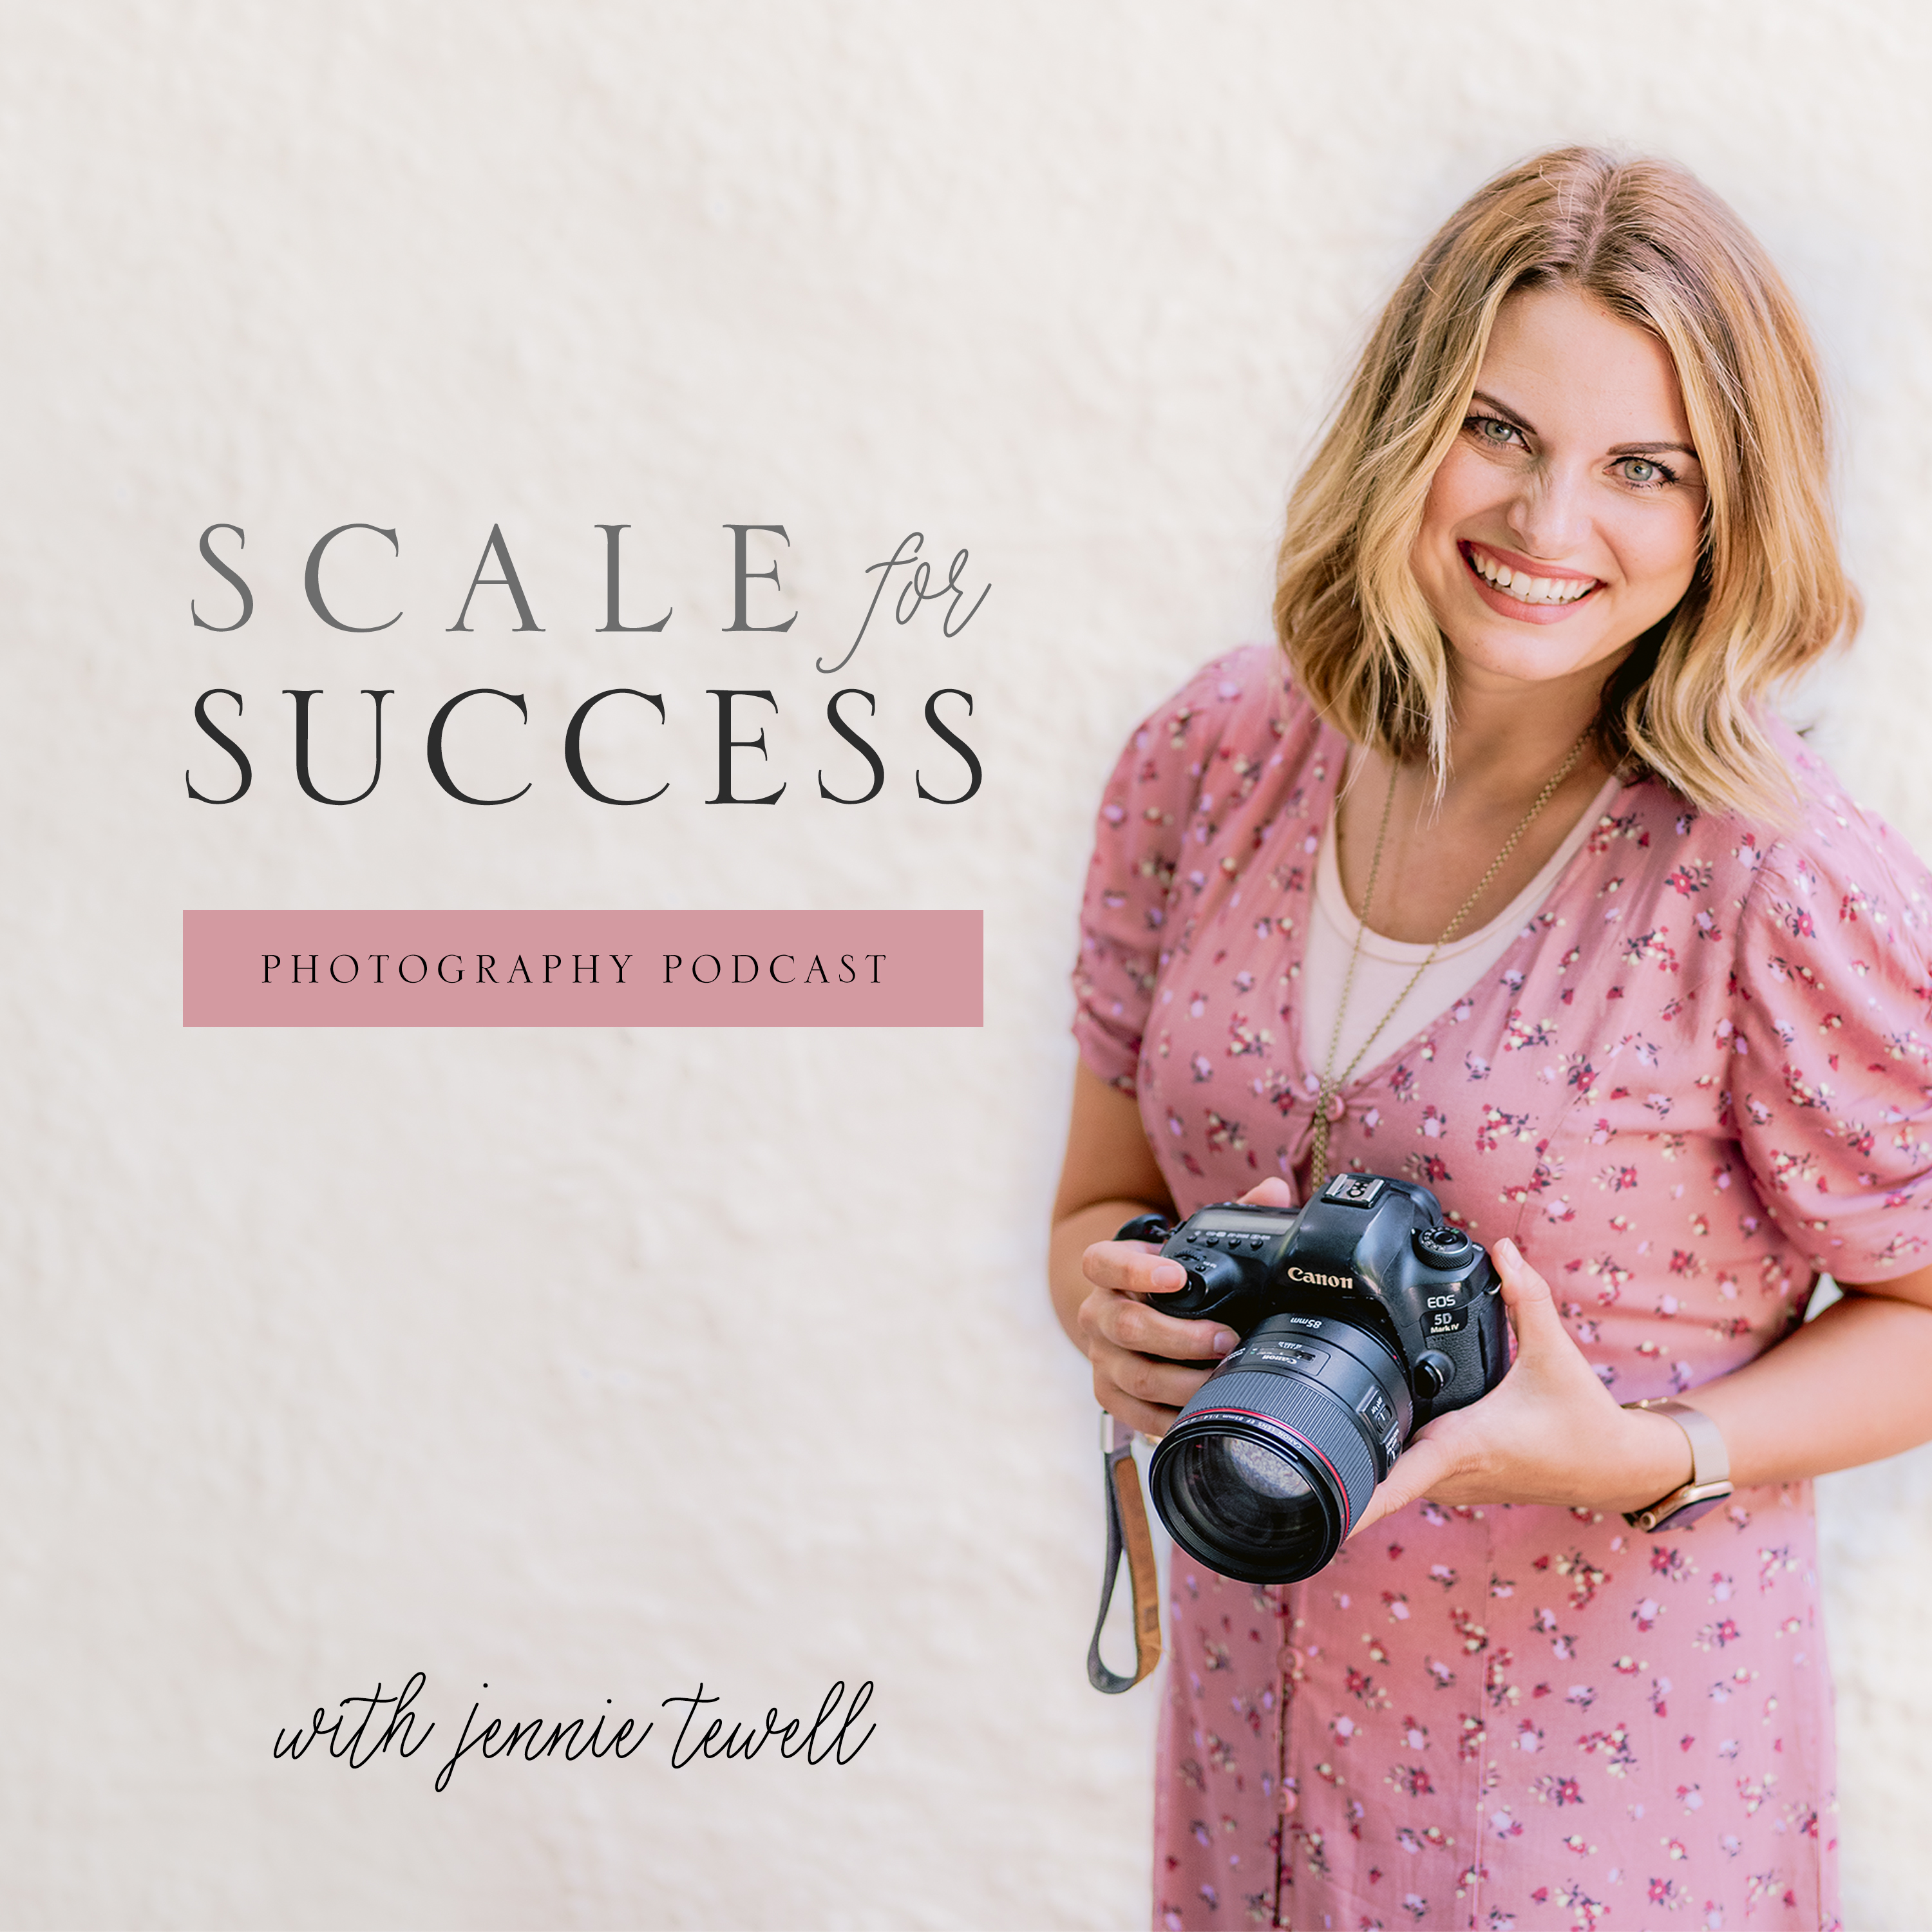 Scale for Success Photography Podcast with Jennie Tewell show art